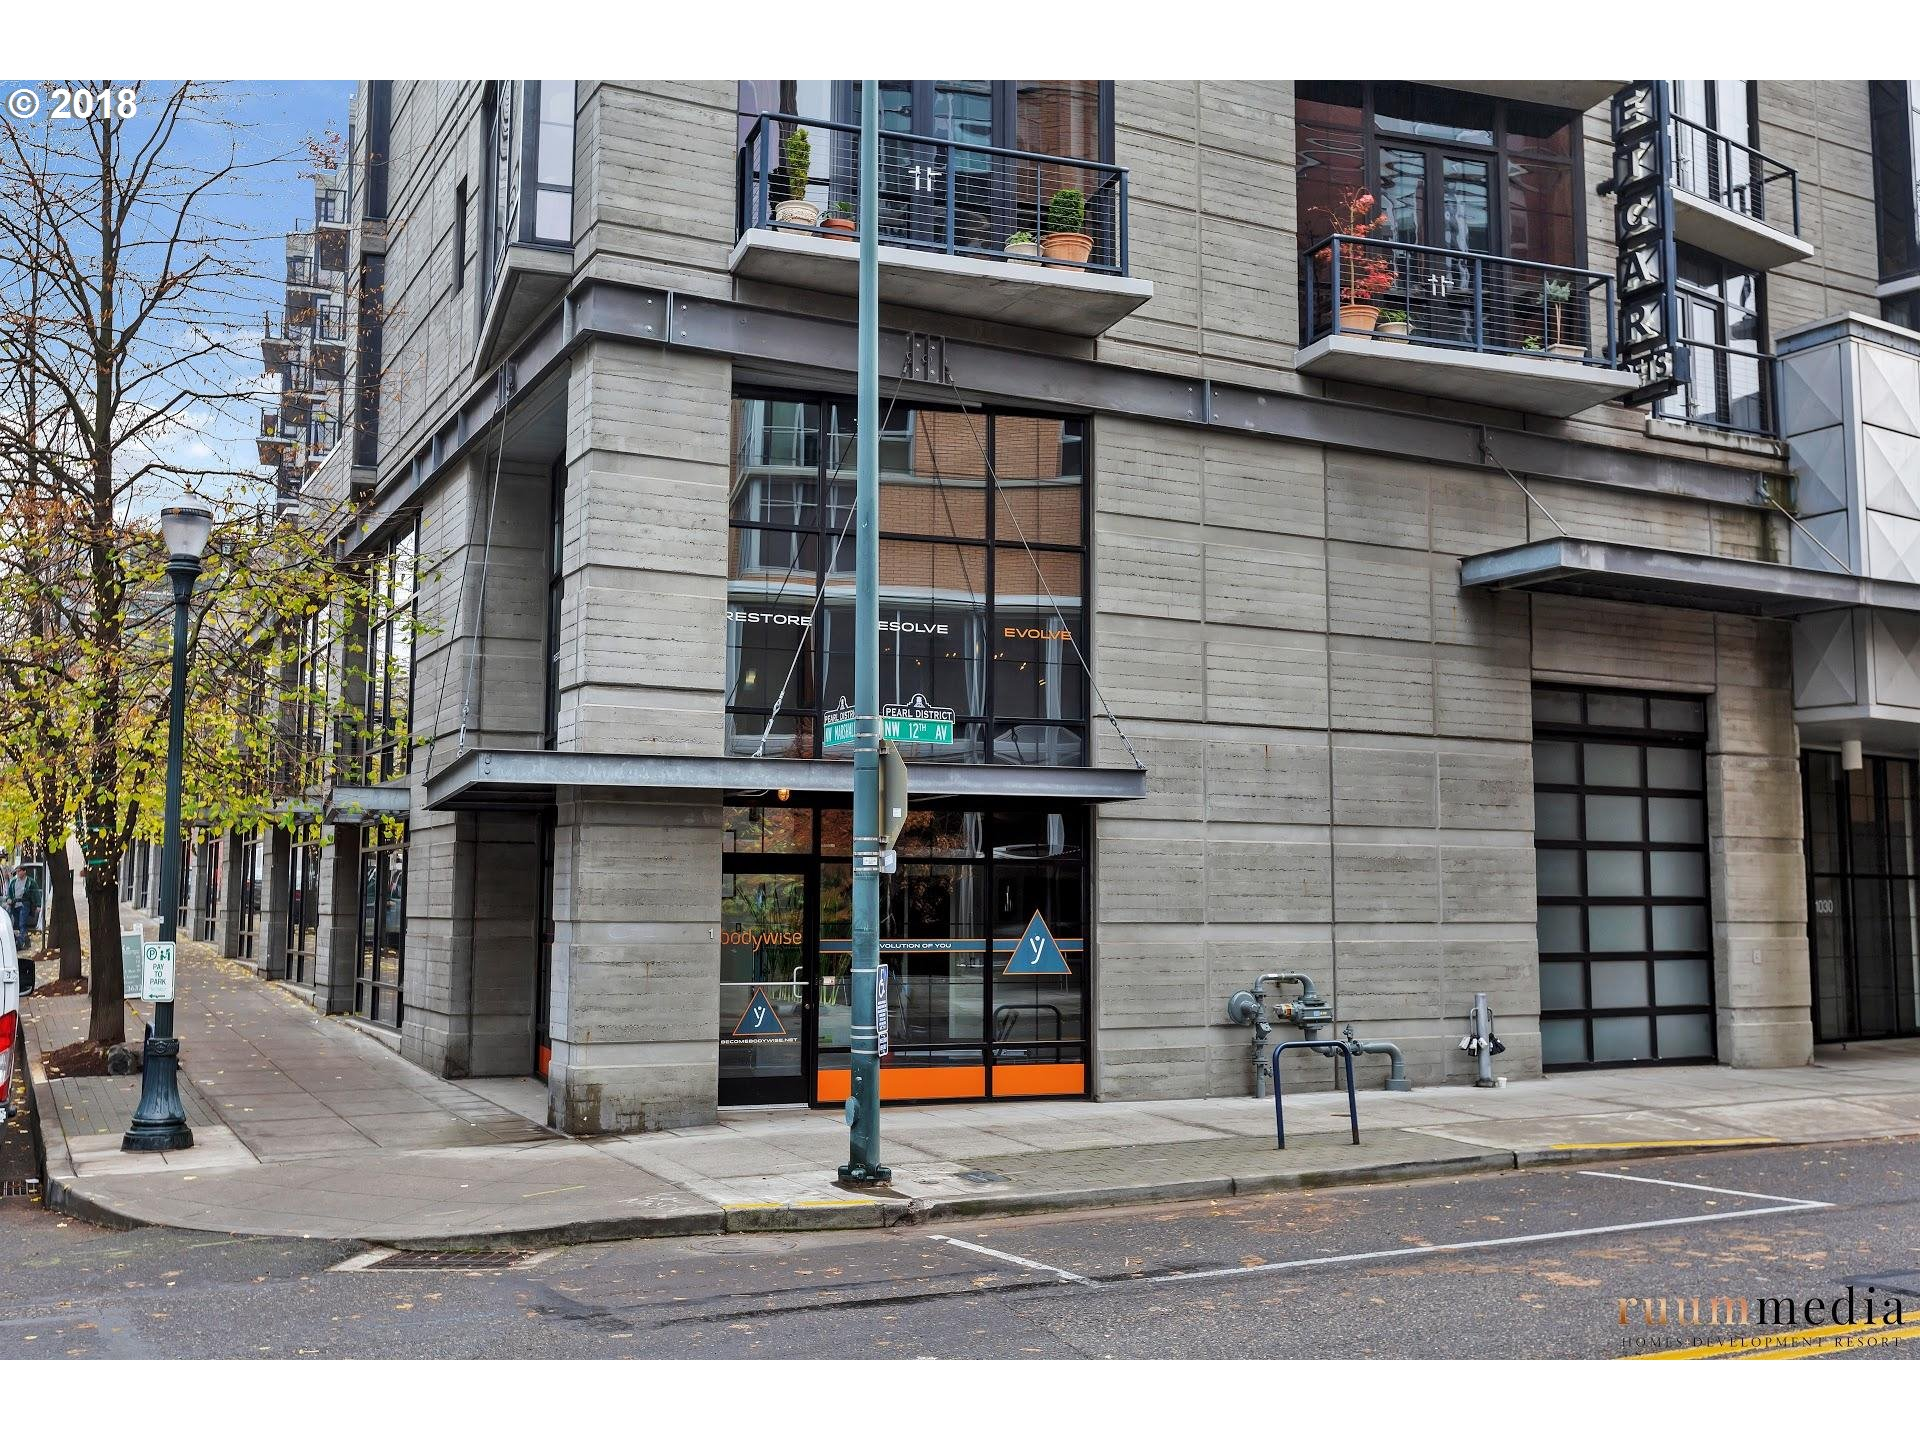 Located in the Pearl District a block from Tanner Springs Park on the corner in Streetcar Lofts. Live/work/commercial unit offers a variety of use options. Location is supreme just a block from Can Font and Tea Bar. The space is light and open, yet private in areas. Enjoy floor to ceiling windows and soaring ceilings that invite guests, friends and clients. Main level has half bath and upstairs has full bath.Includes parking/storage.